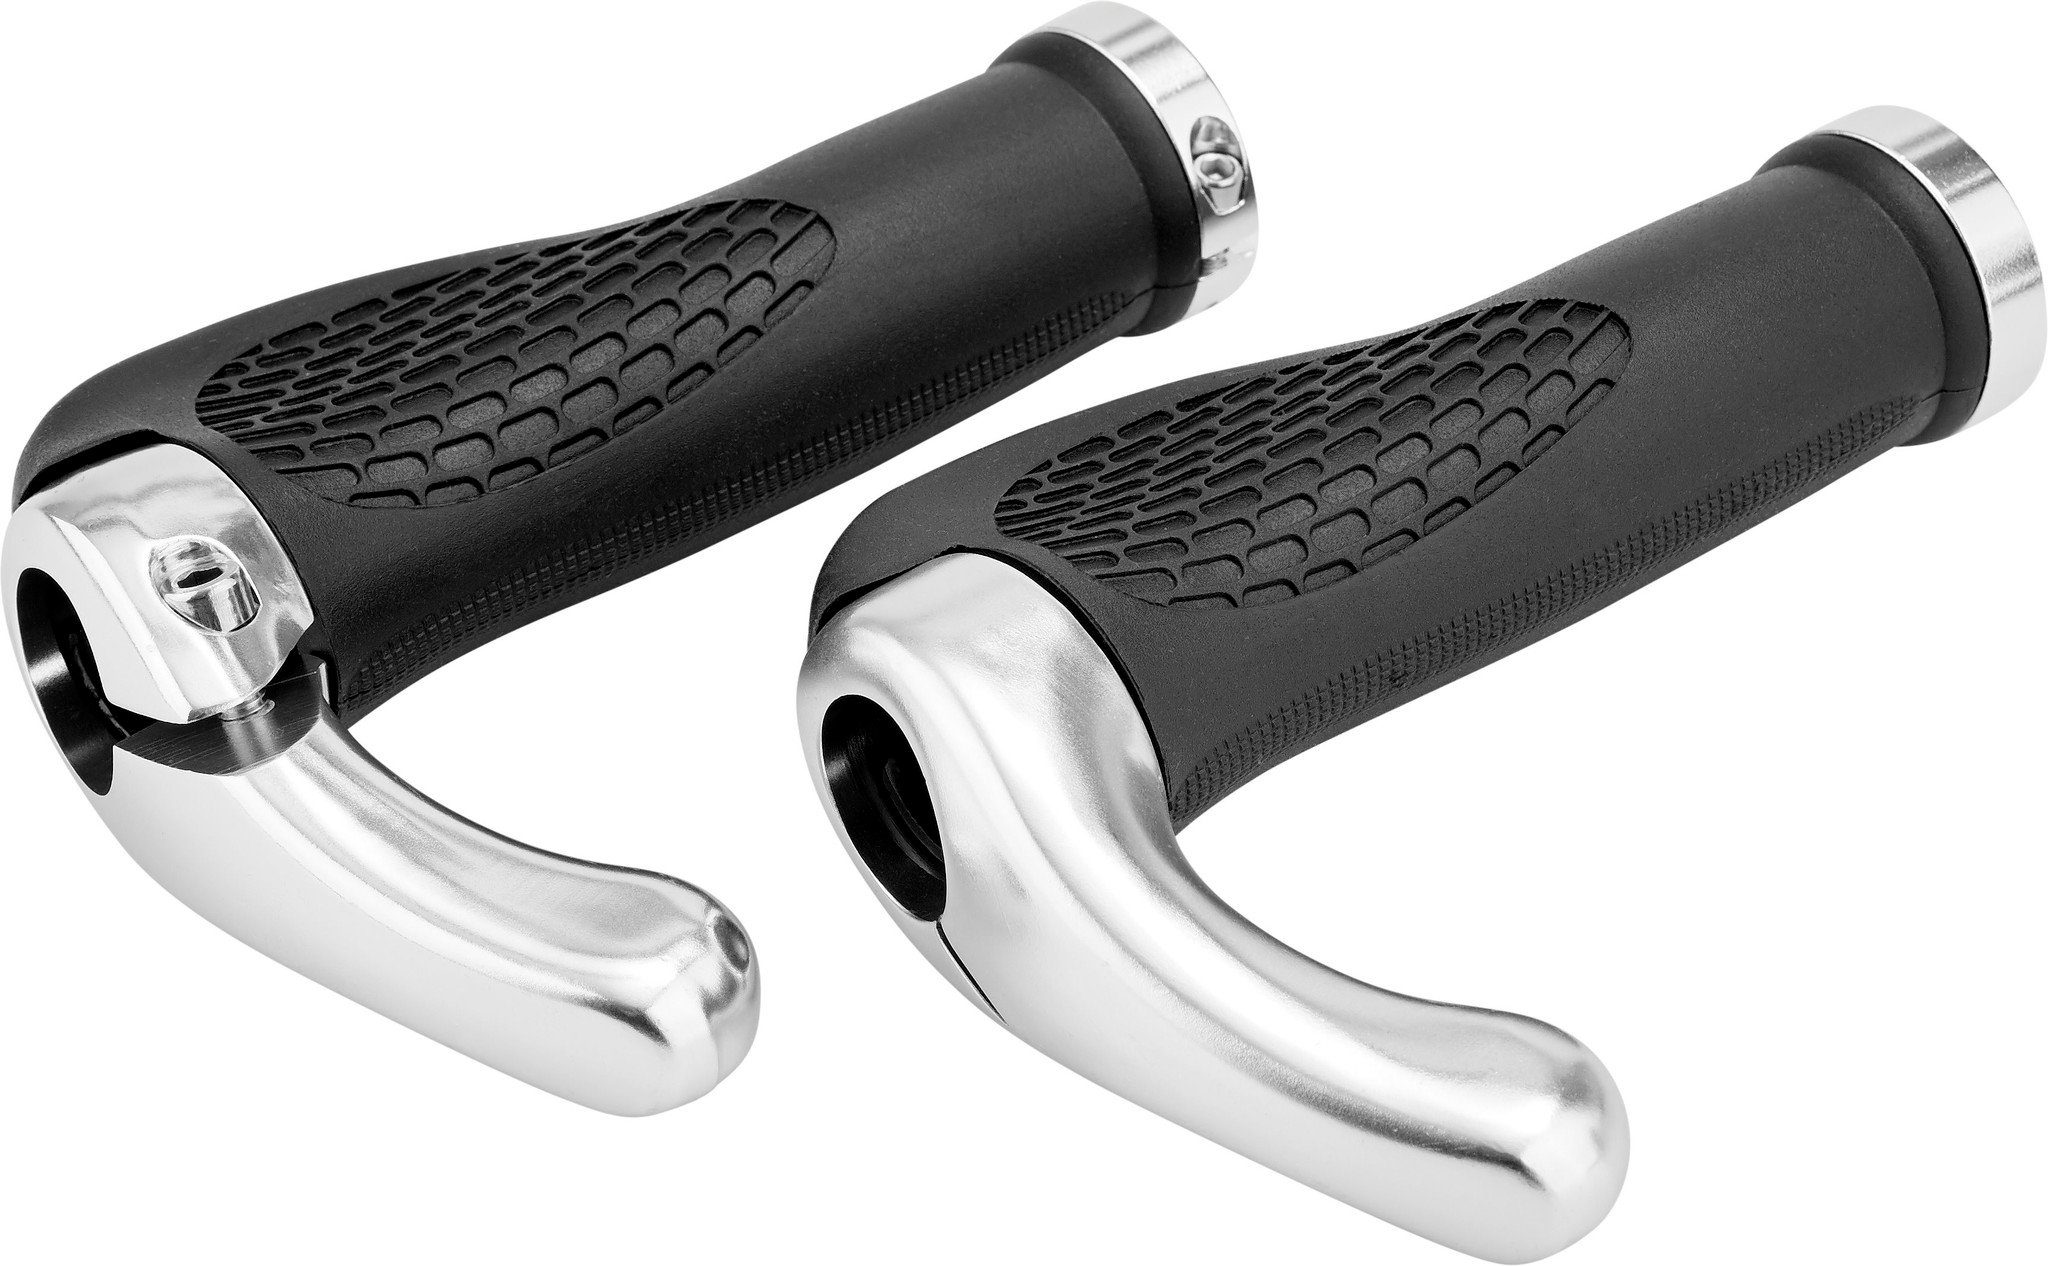 Red Cycling Products Fahrradgriff »Multi Ergo Grip black«